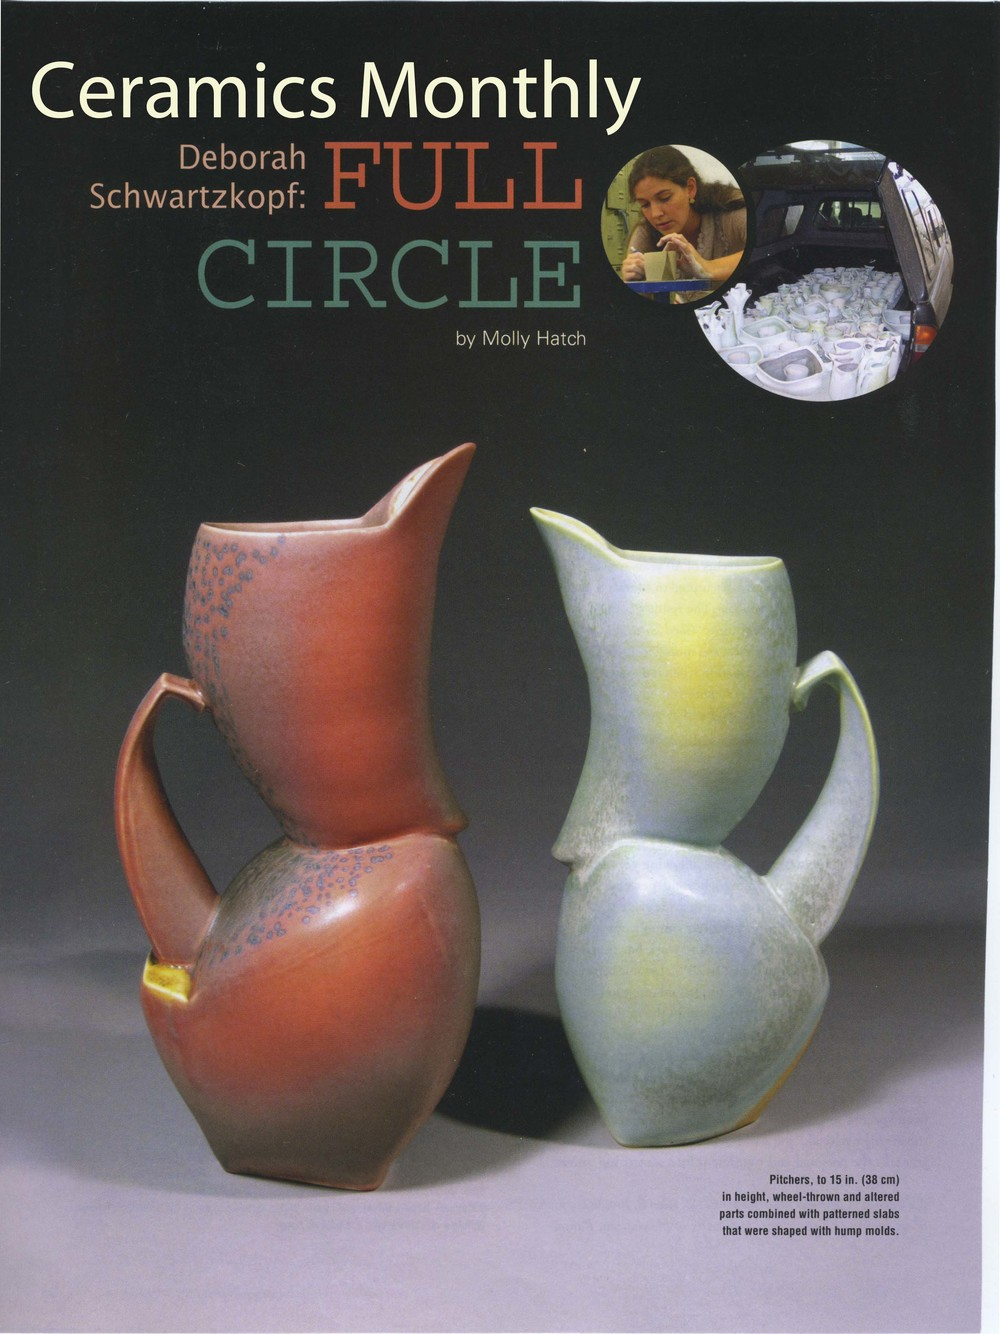 Ceramics Monthly.jpg